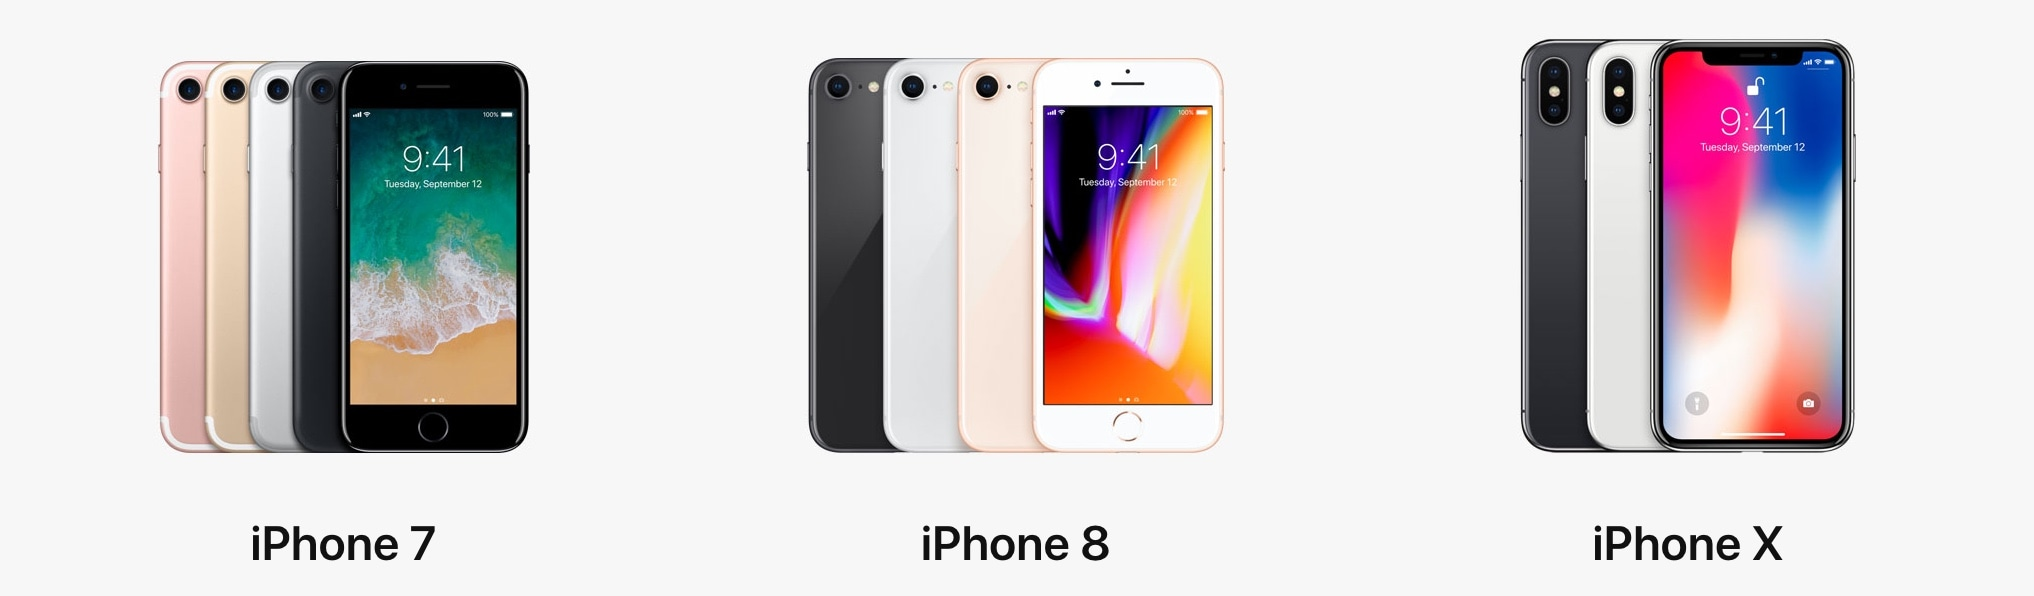 new product 1dbe5 7dd19 Weight, size, and battery life: iPhone X vs iPhone 8 vs iPhone 7